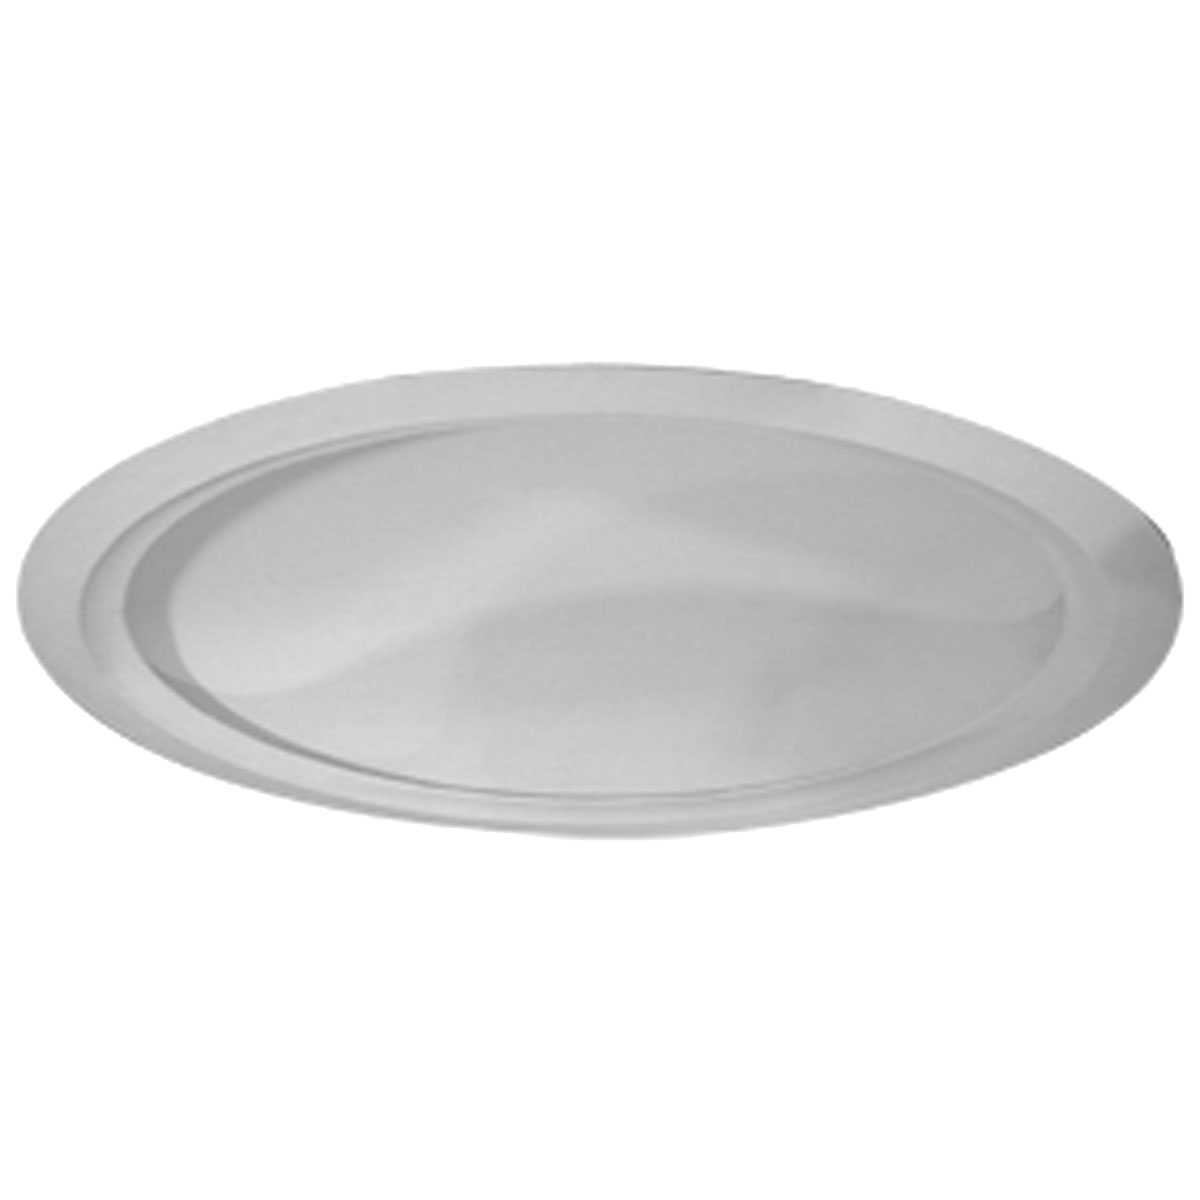 """DOME62AR 63-5/8""""OD x 59-1/2""""ID 13-3/8""""D Artisan Ceiling Dome with Light Ring (62""""Diameter x 13-3/8""""D Rough Opening)"""